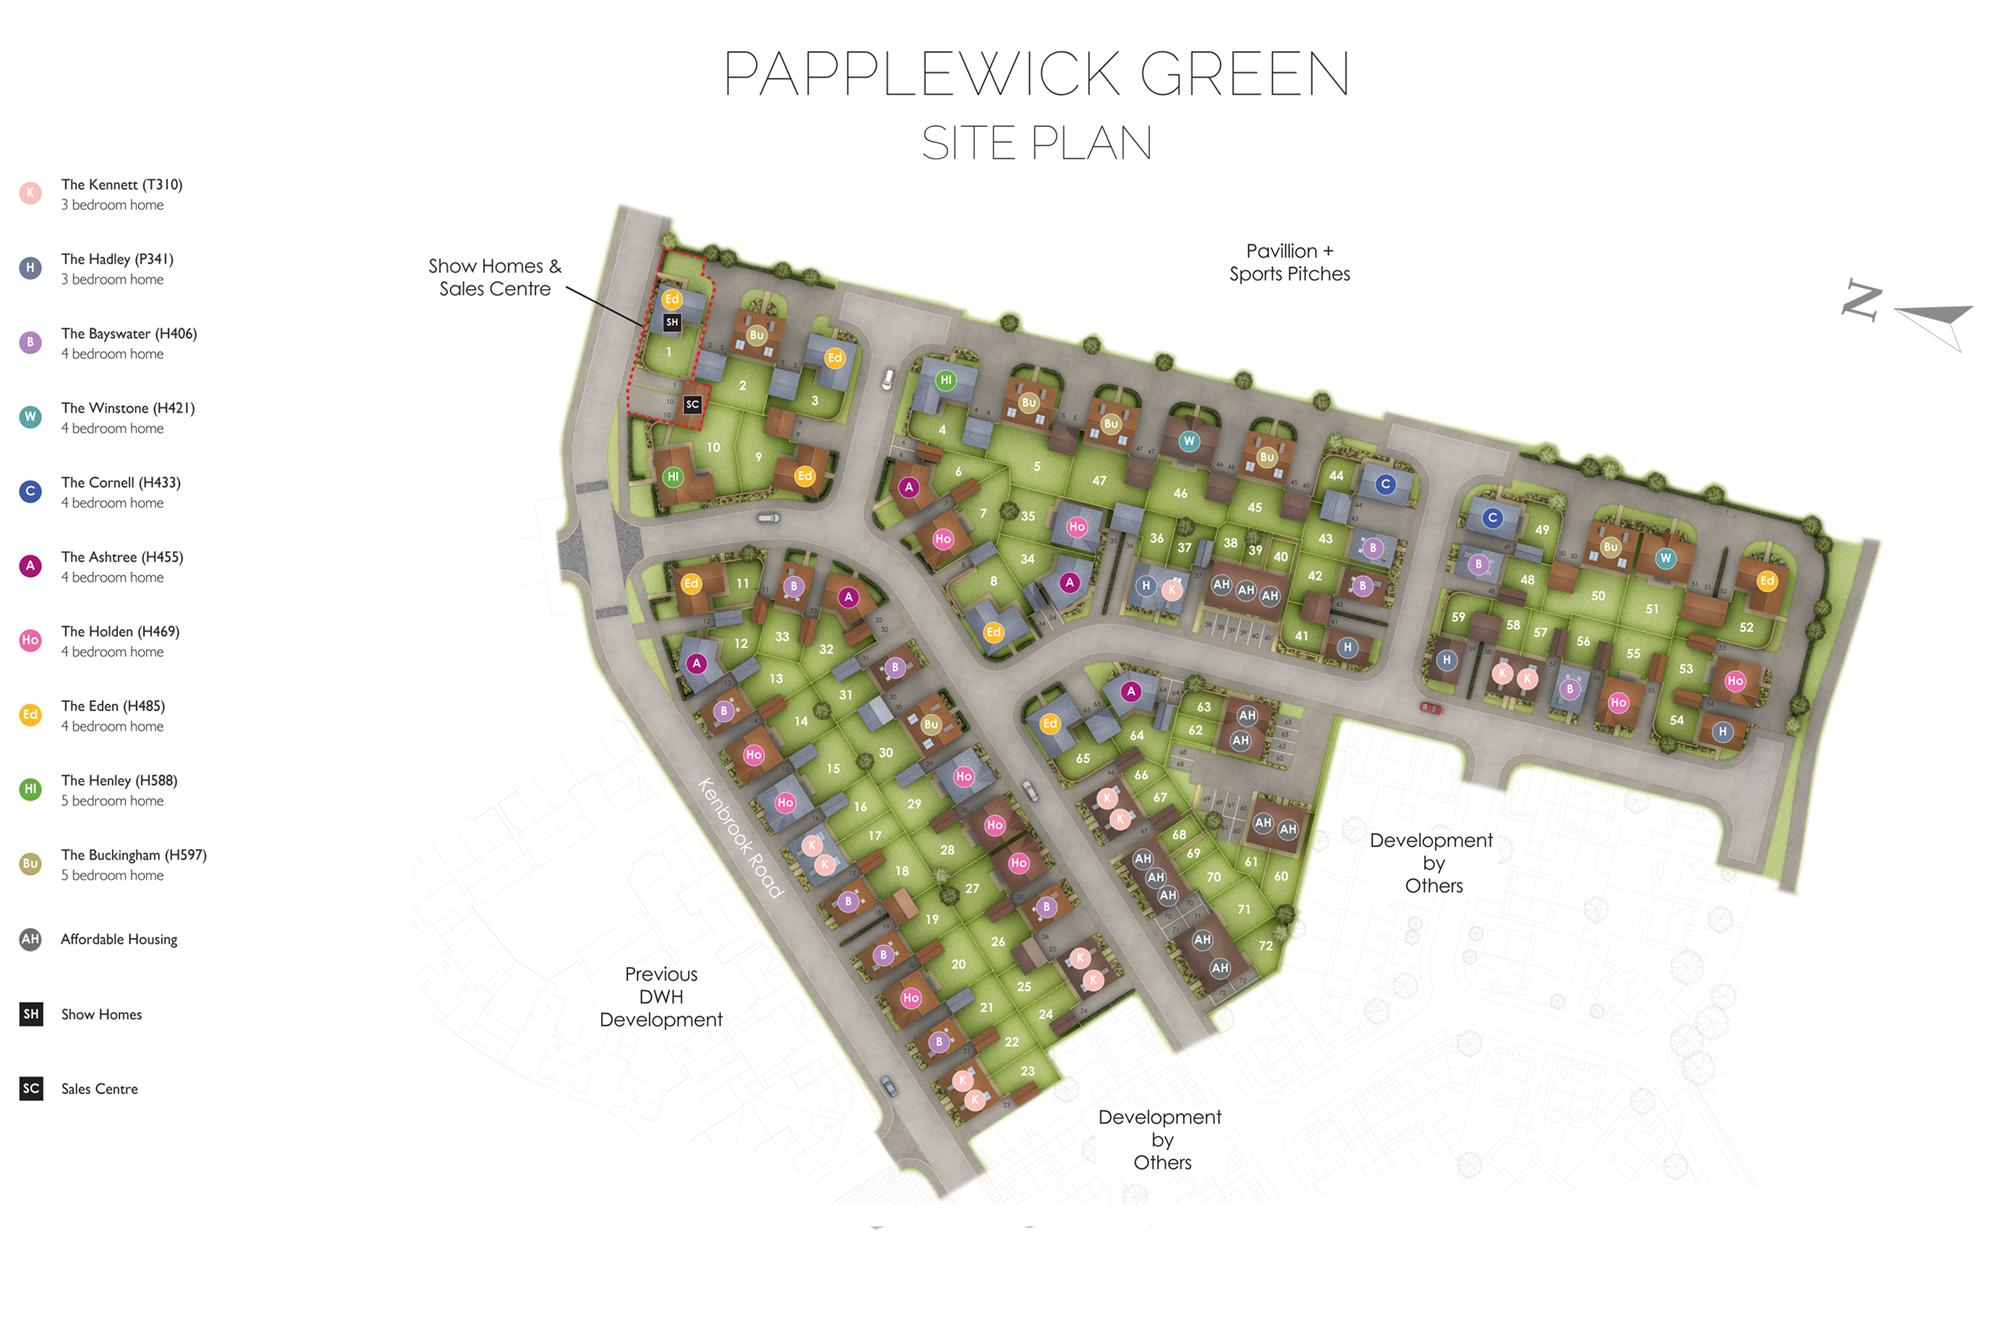 Papplewick Green